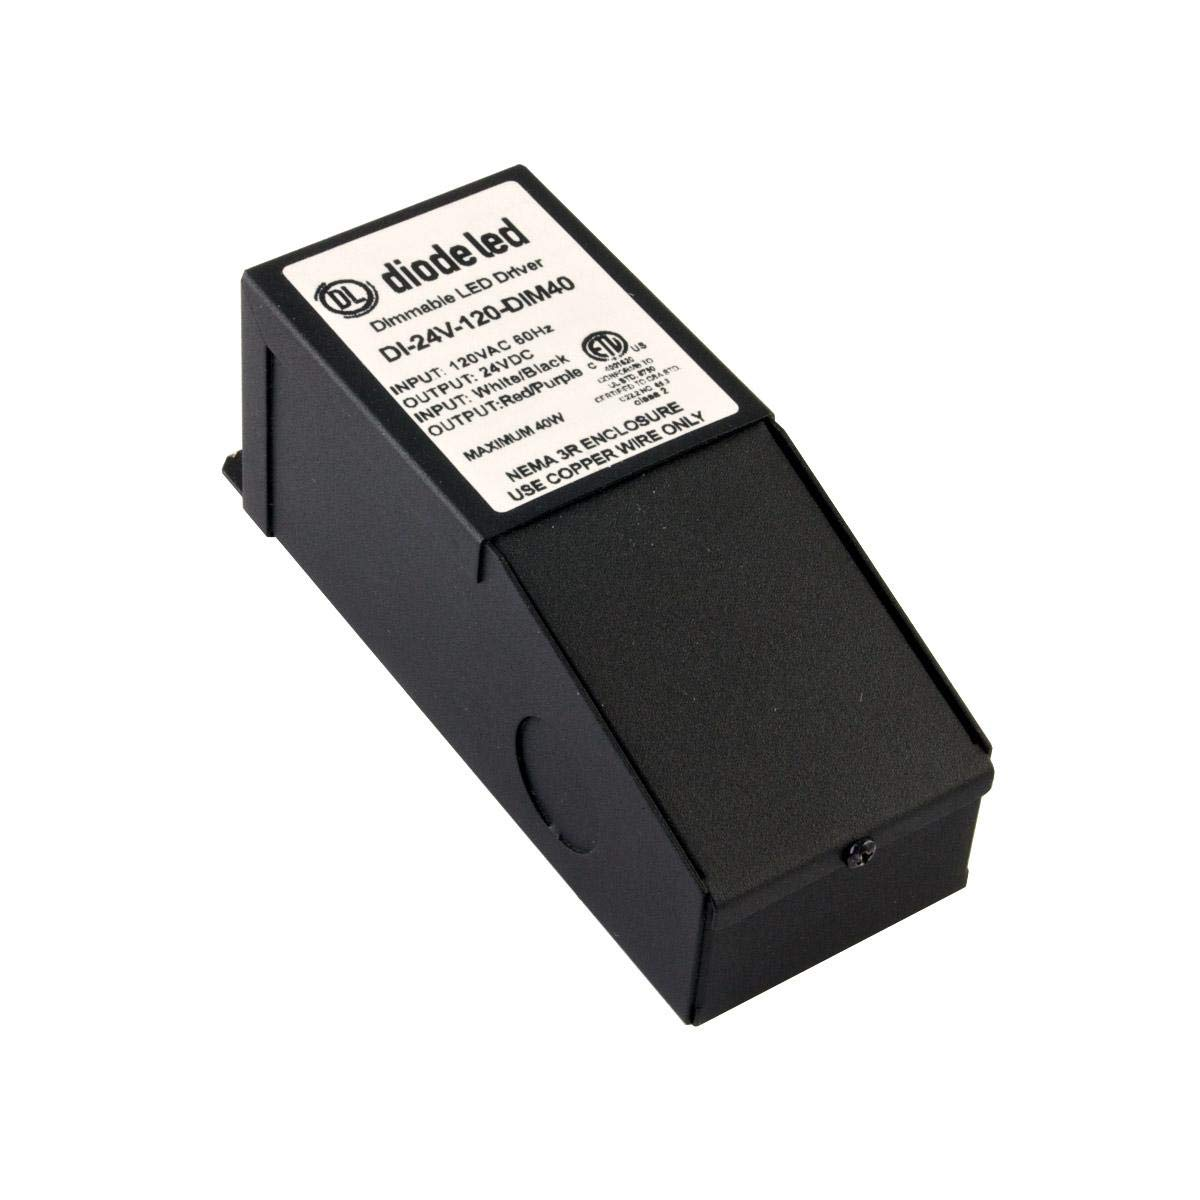 Diode LED 24V 40W Magnetic Dimmable Driver 277V Input Class 2